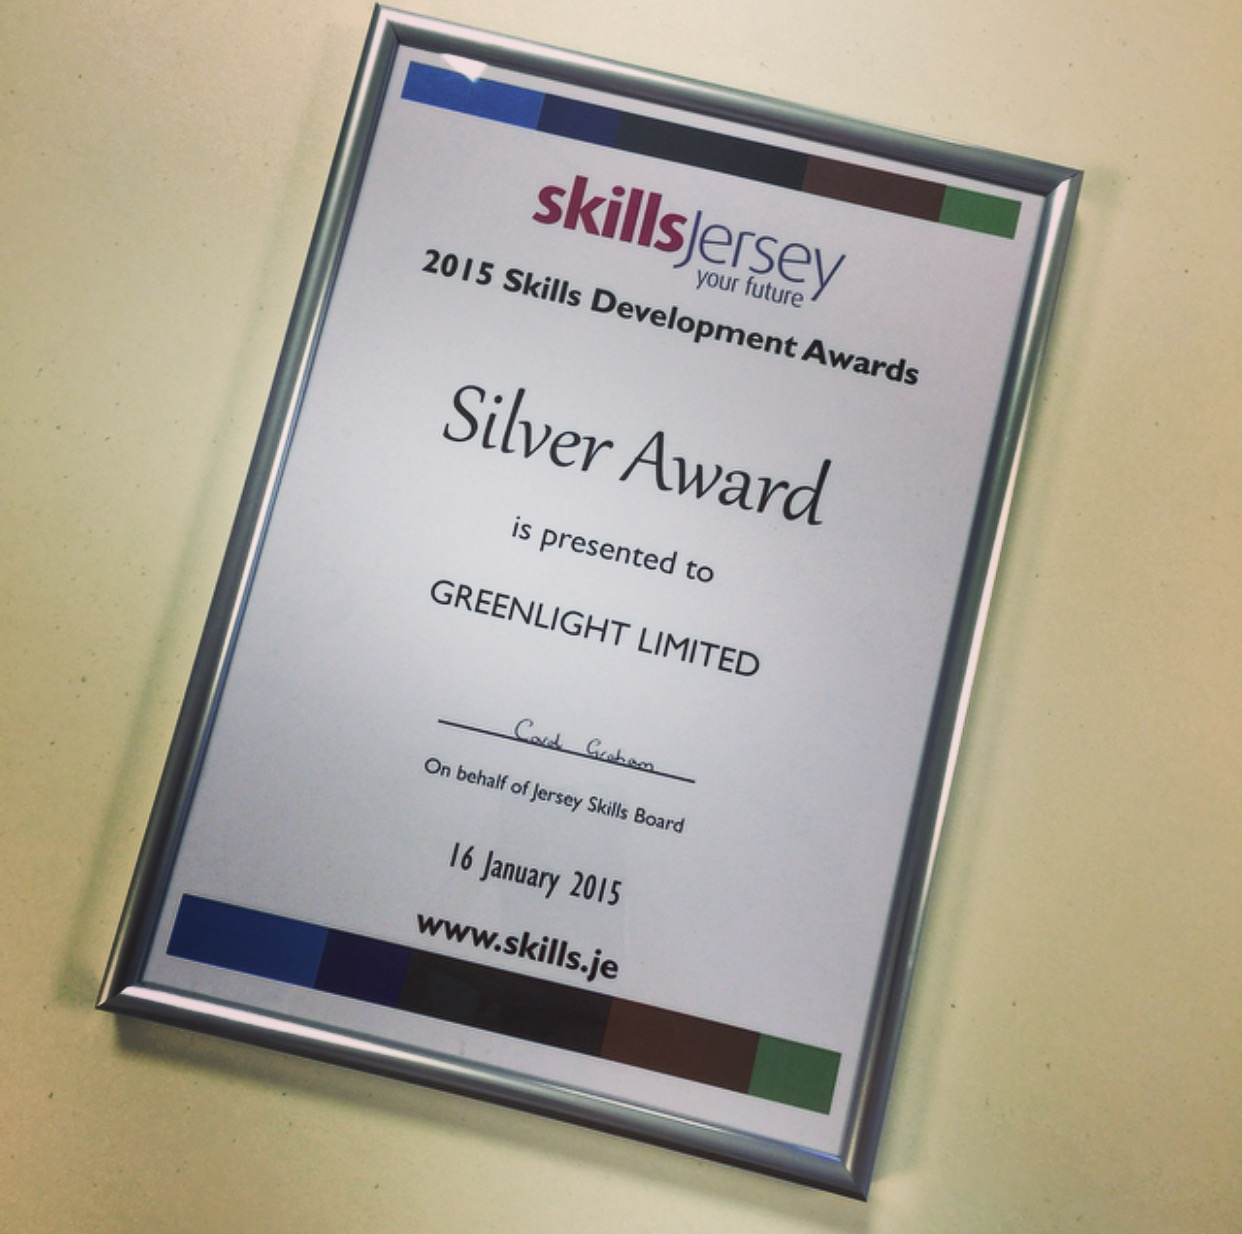 Greenlight's 2015 Skills Development Awards Certificate